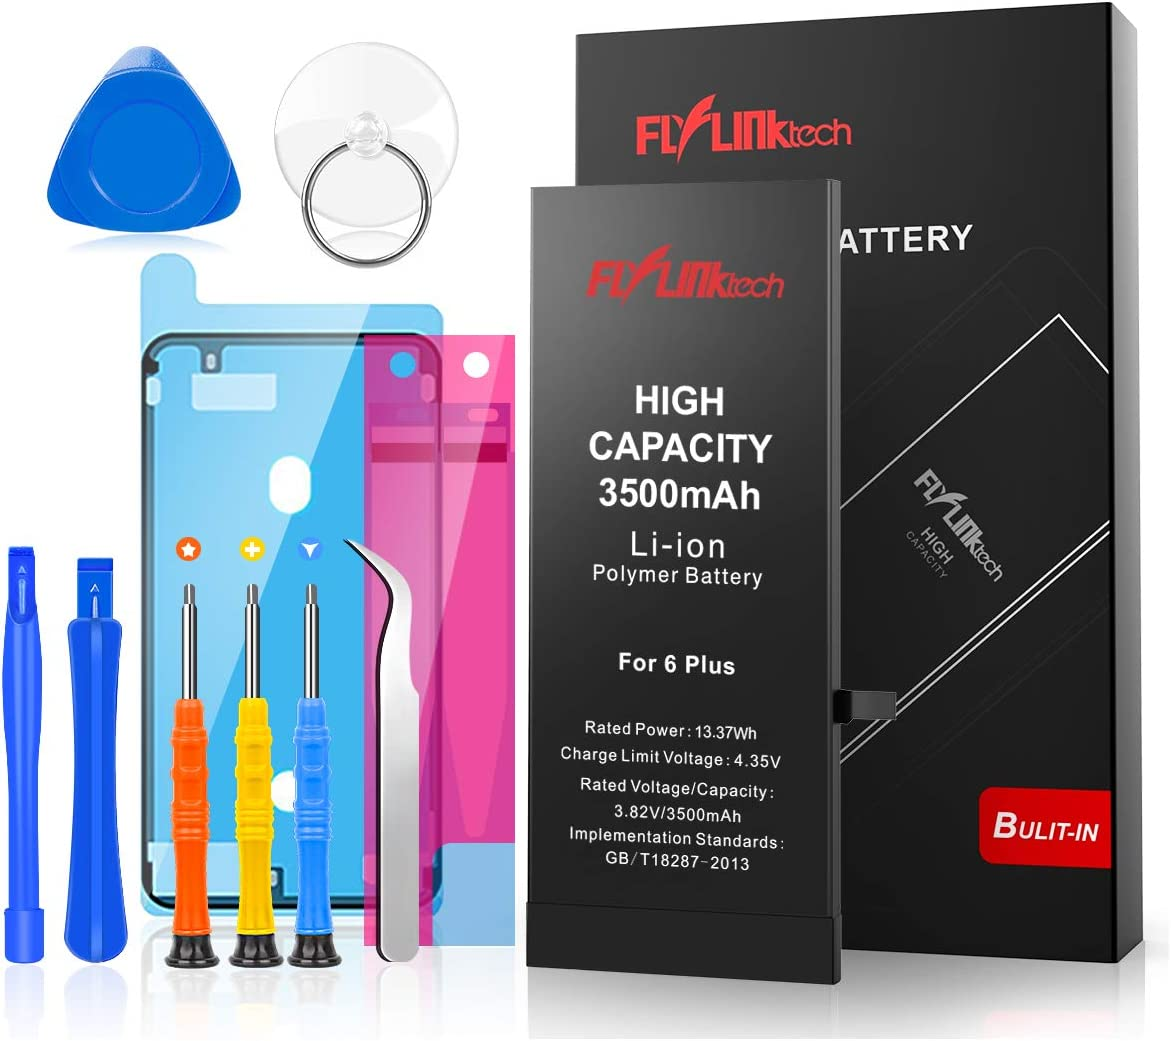 Flylinktech for iPhone 6 Plus Battery Replacement, 3500mAh High Capacity Li-ion Battery with Repair Tool Kit-Included 24 Months Assurance: Home Audio & Theater